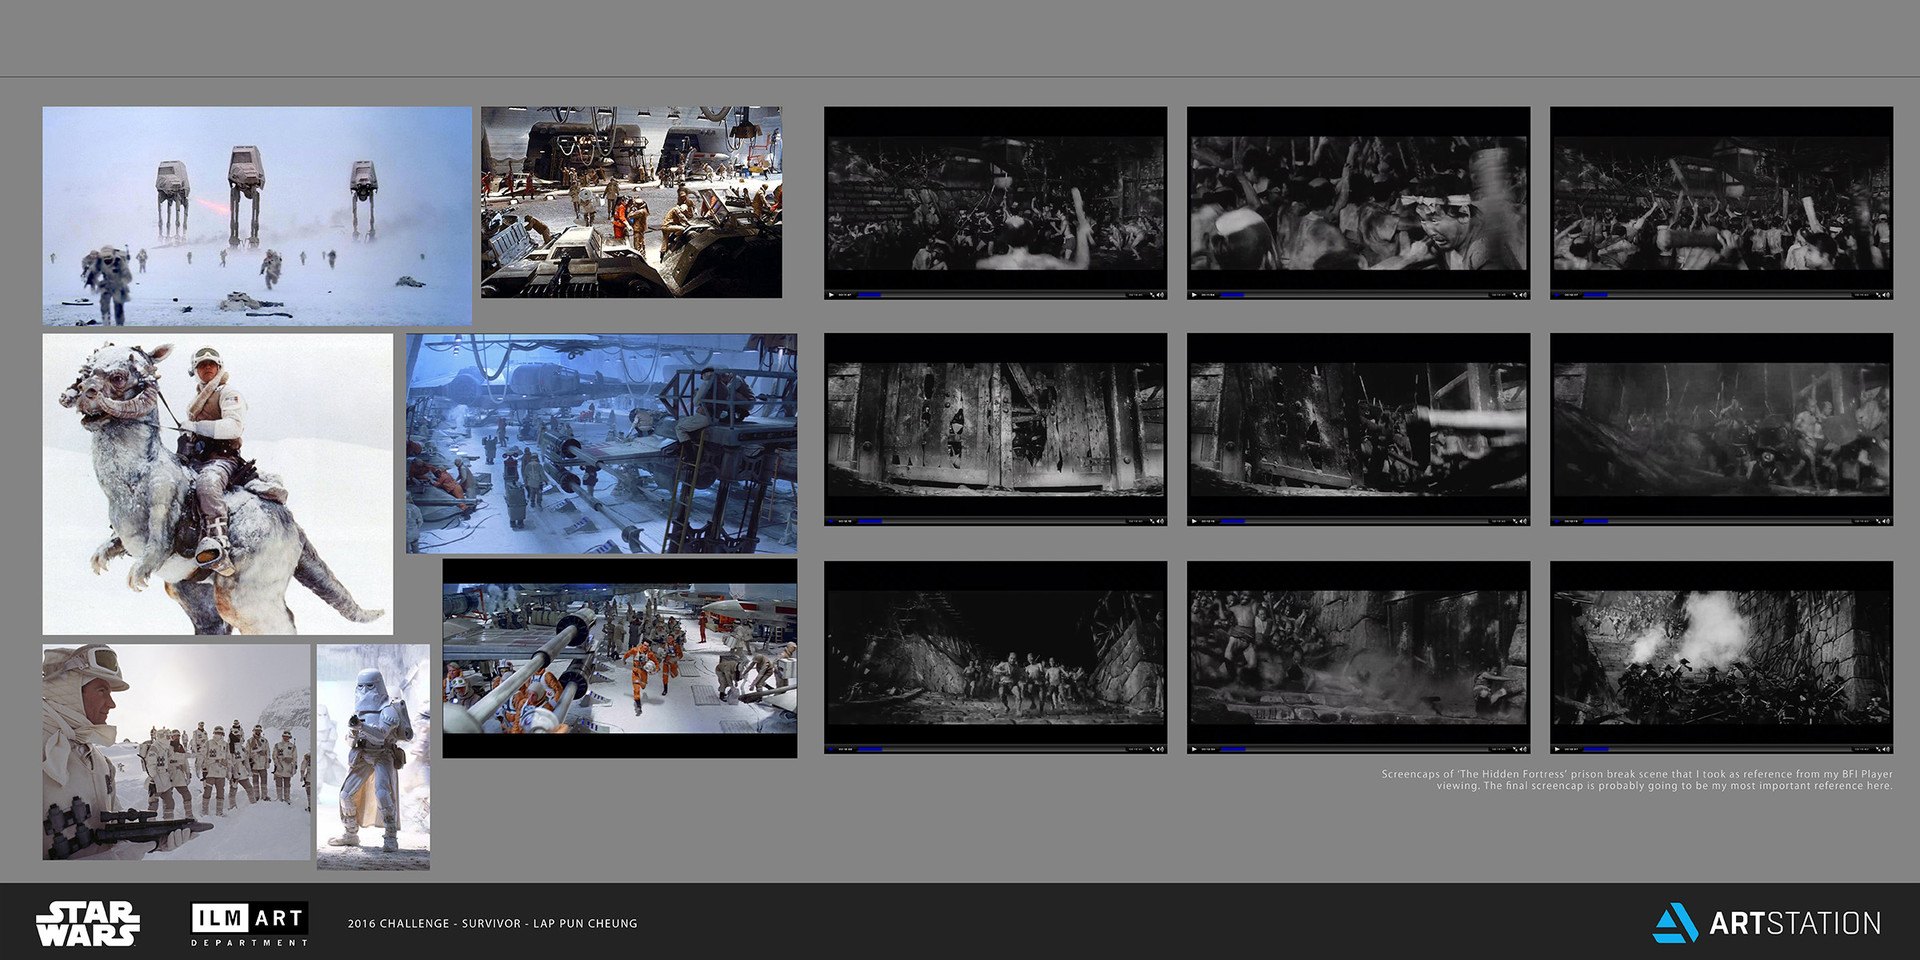 Lap pun cheung the job keyframe 1 references online